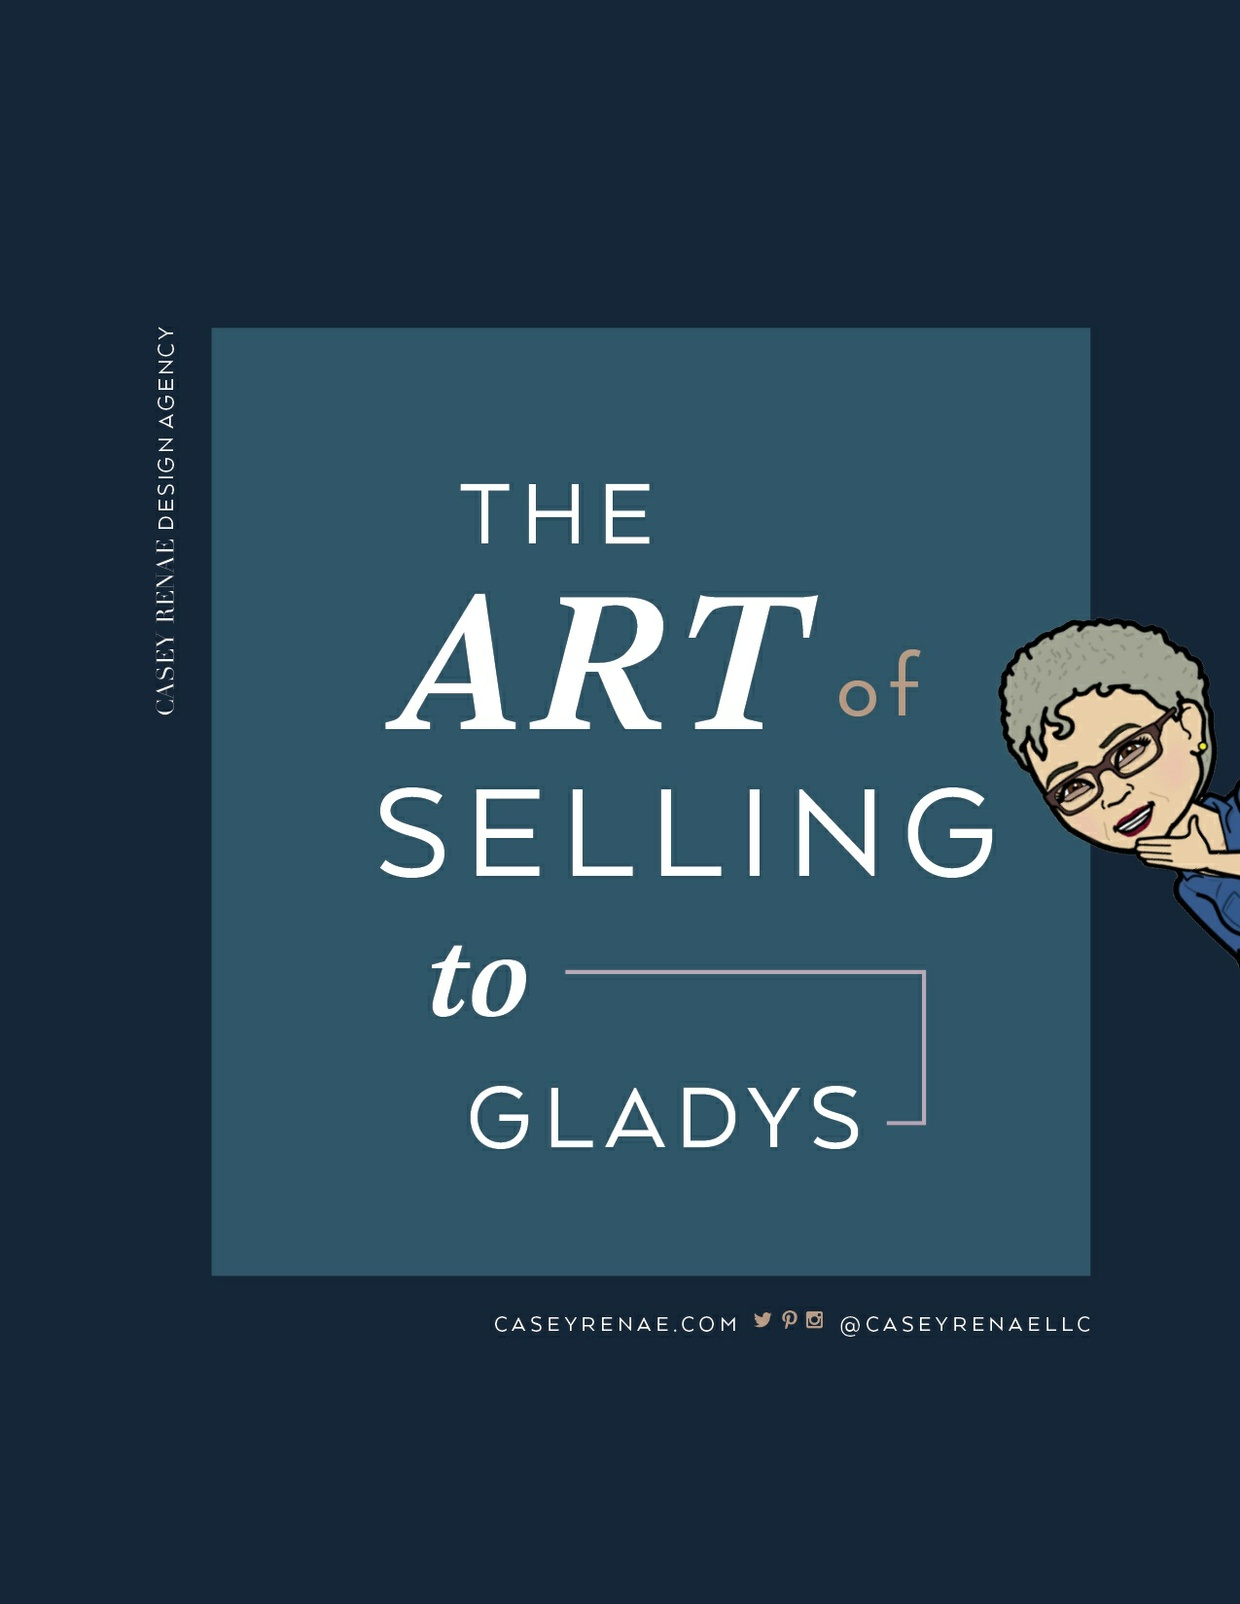 The Art of Selling to Gladys E-Guide